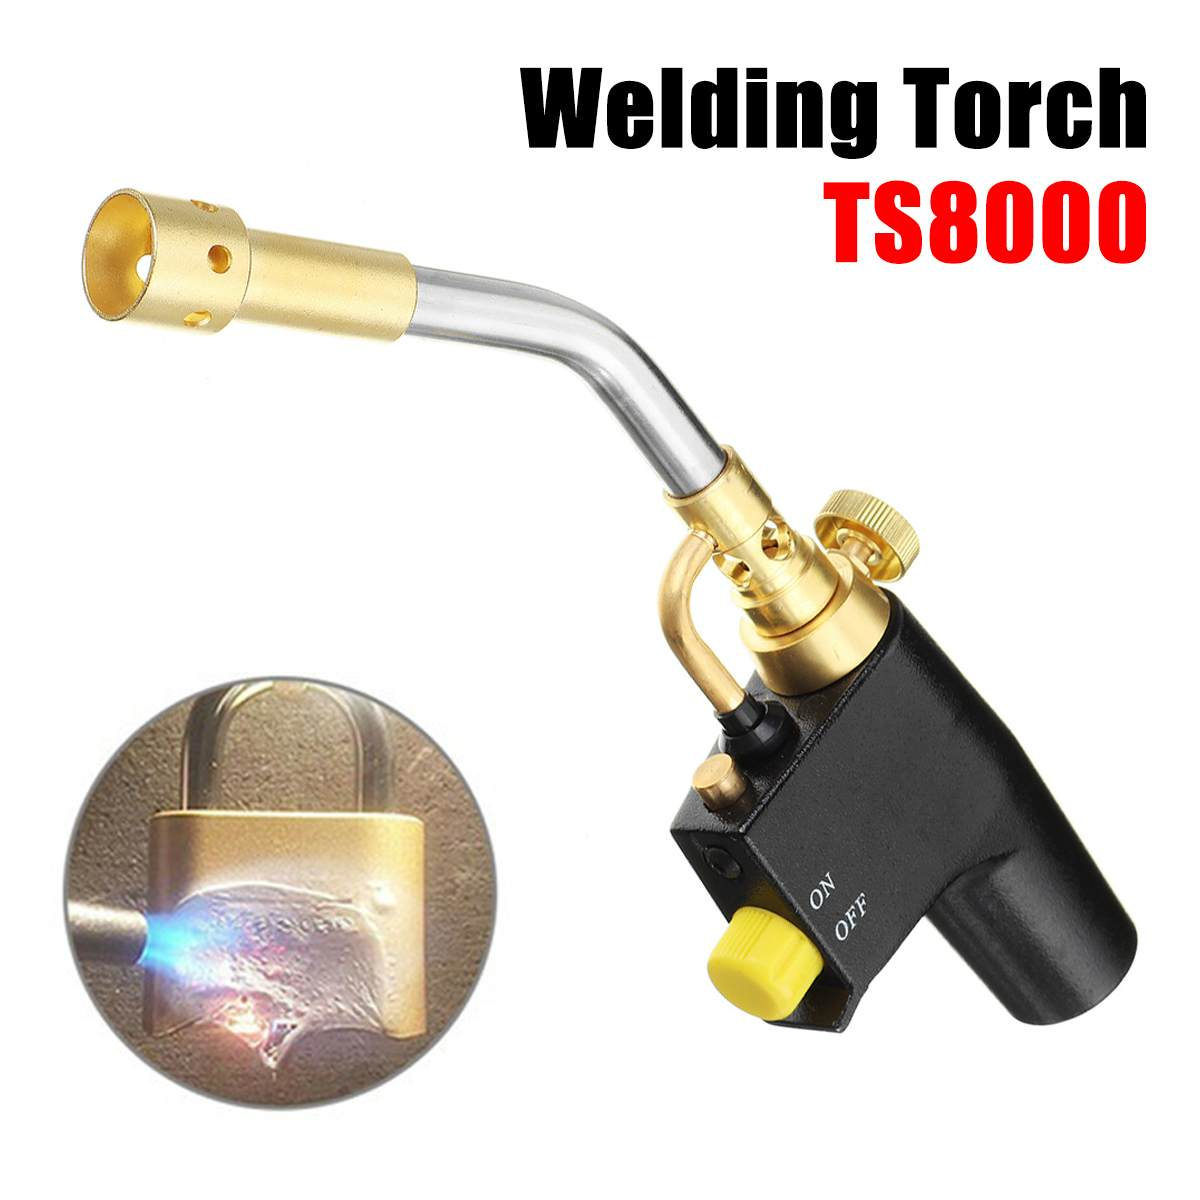 Brazing Gas Bernzomatic Soldering TS8500 Style Steel Mapp Blow Welding Torch Stainless BBQ Camping Map TS8500 Welding Kit Torch